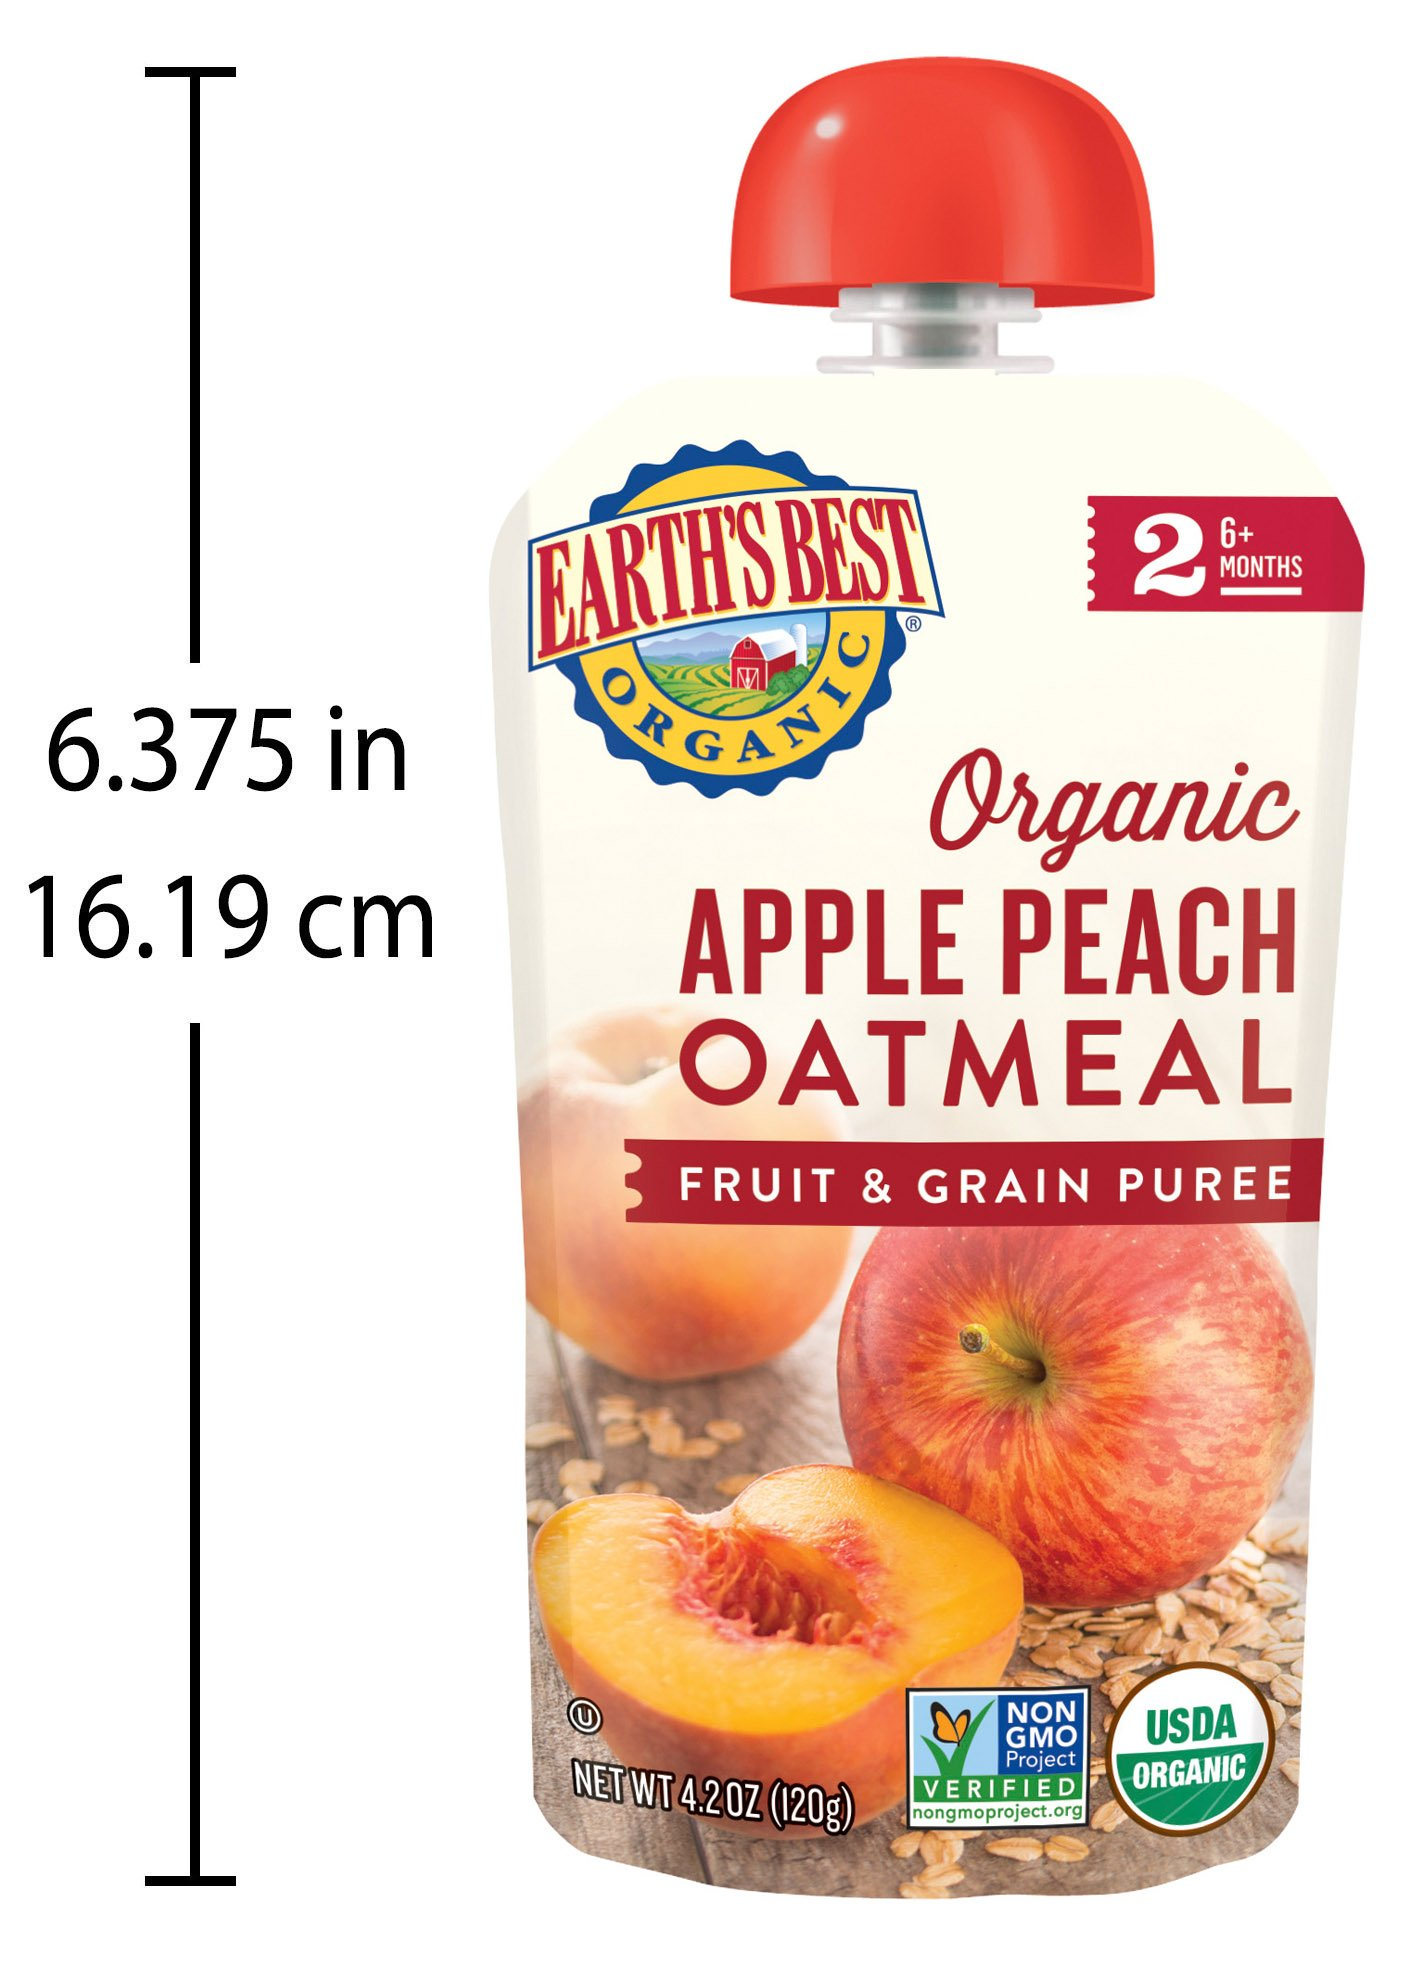 Earth's Best Organic Stage 2 Baby Food, Apple Peach and Oatmeal, 4.2 oz. Pouch (Pack of 12) by Earth's Best (Image #9)